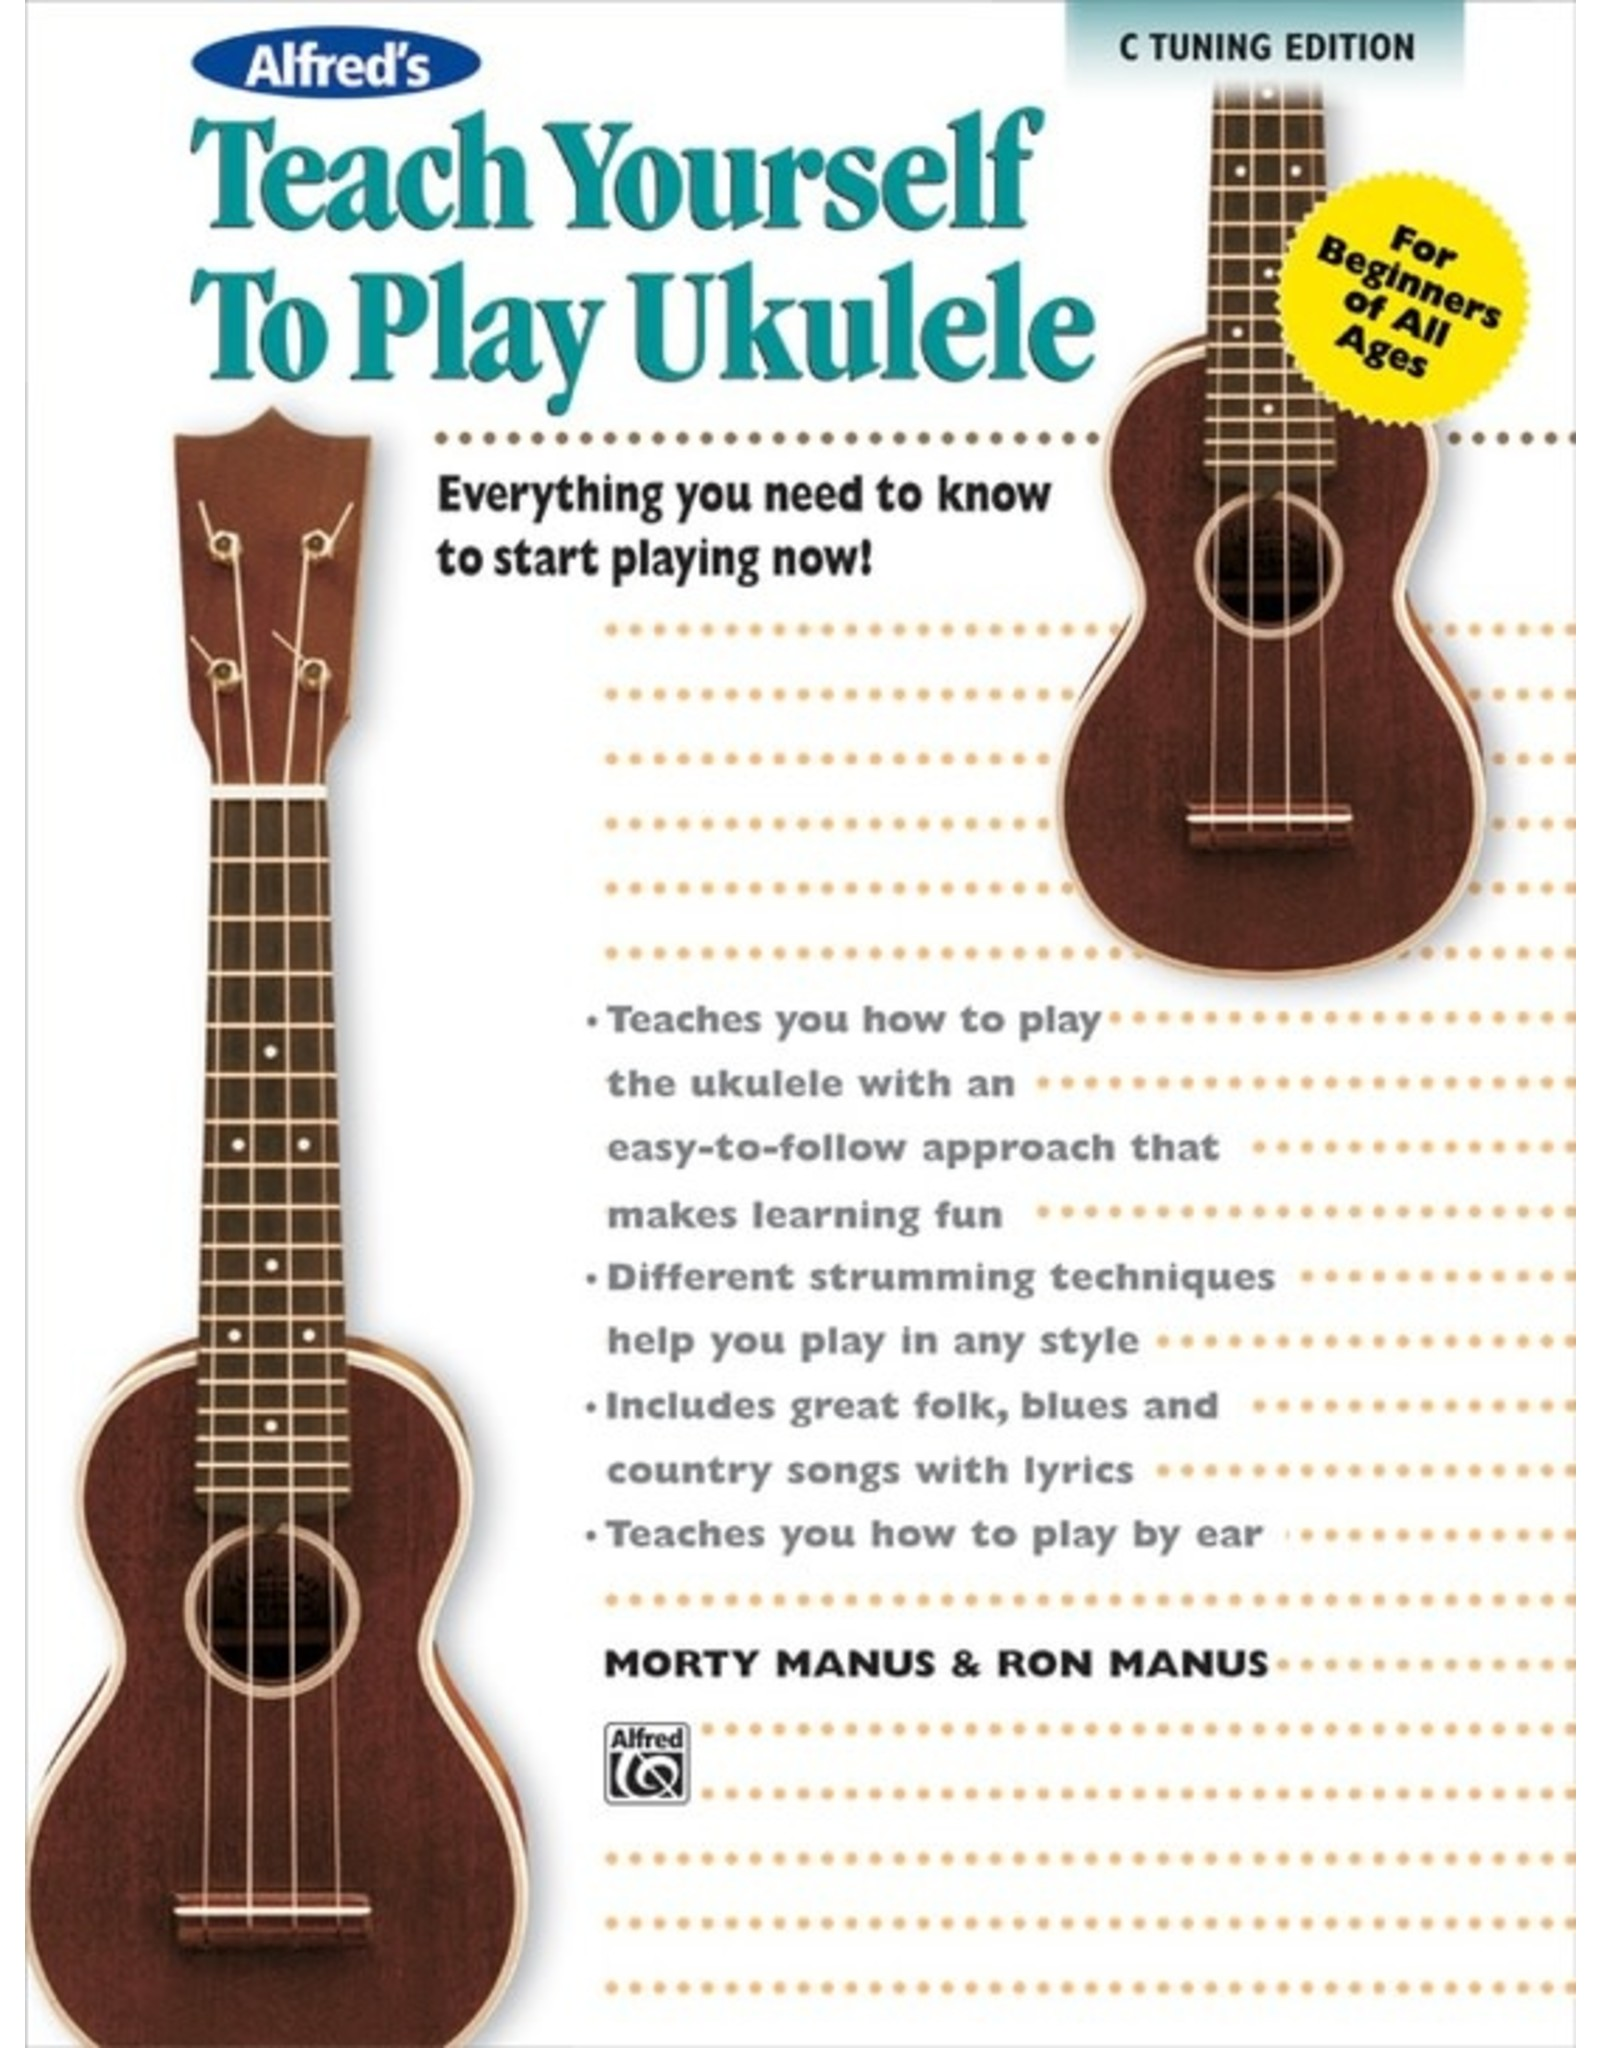 Alfred Alfred's Teach Yourself to Play Ukulele Standard Tuning Edition with CD